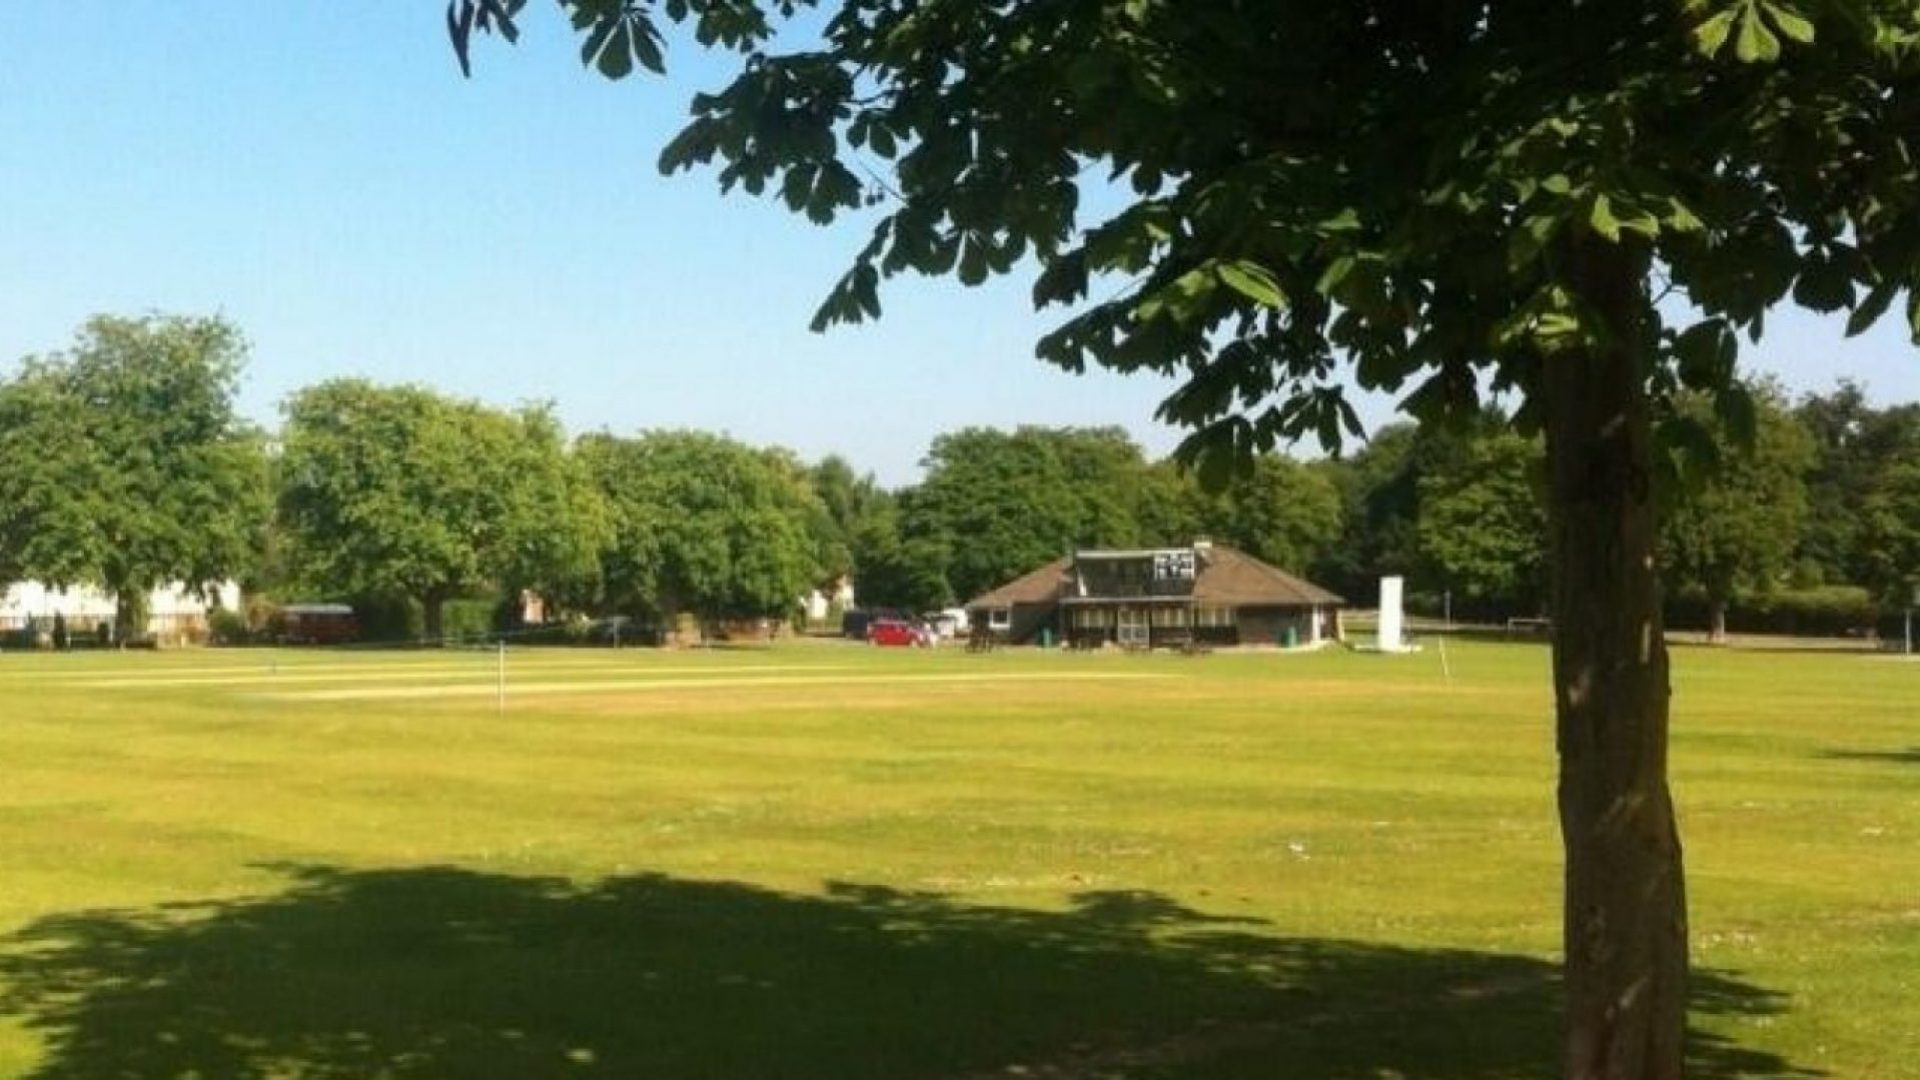 Wisborough Green Cricket Club